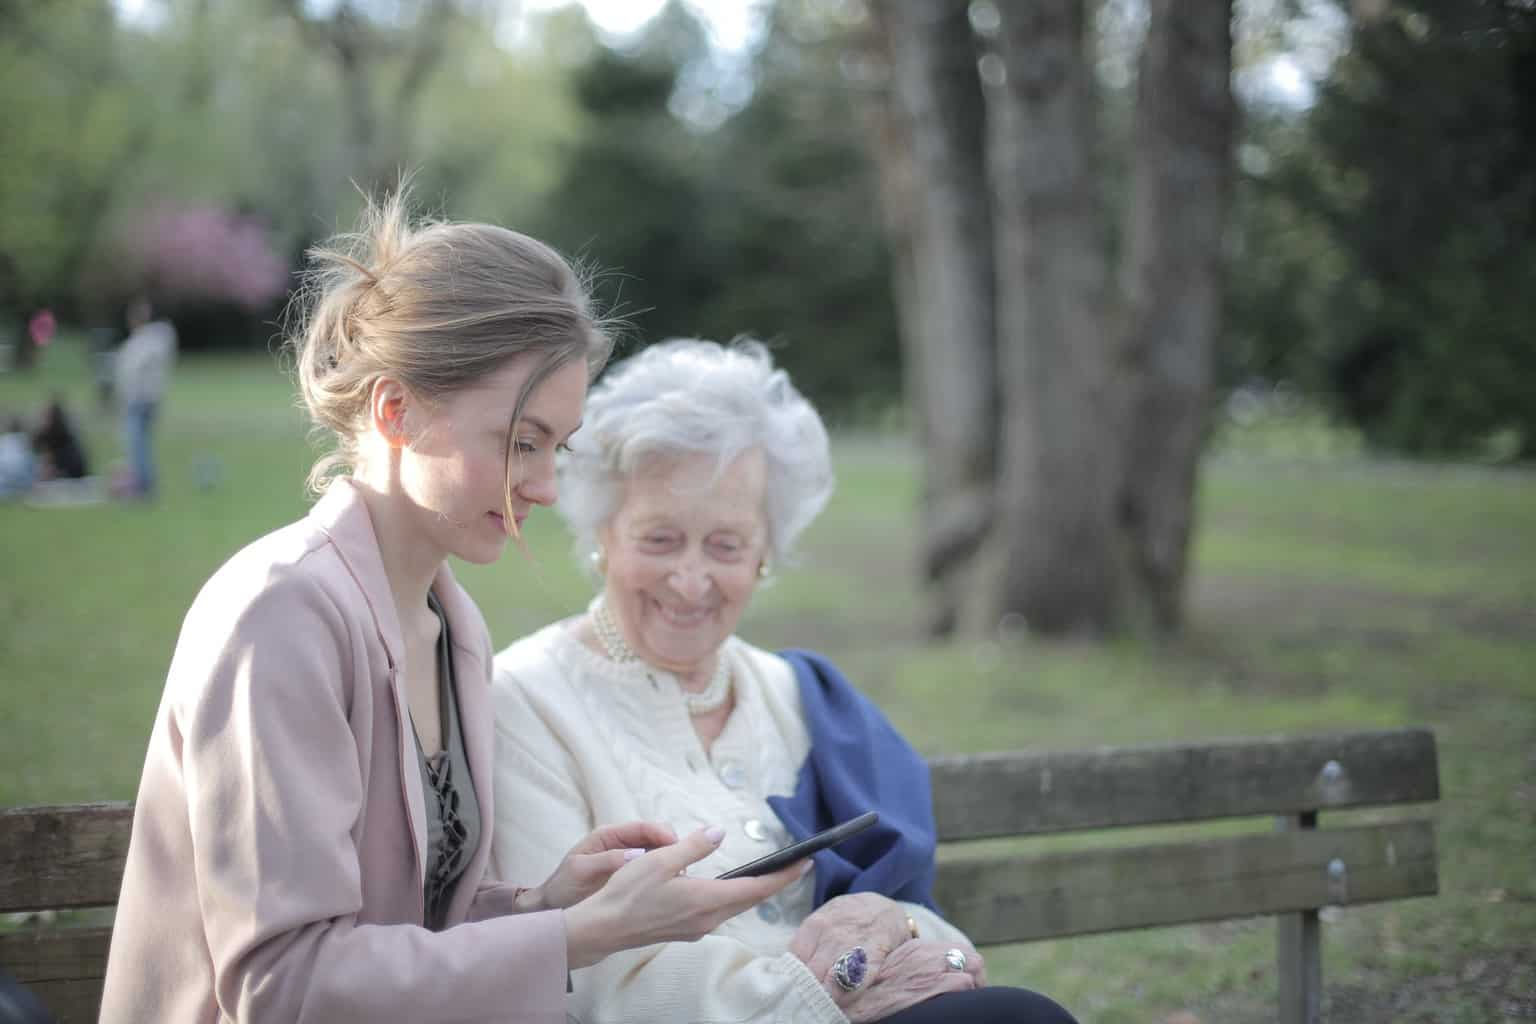 When should you look for a retirement home for an ageing parent?